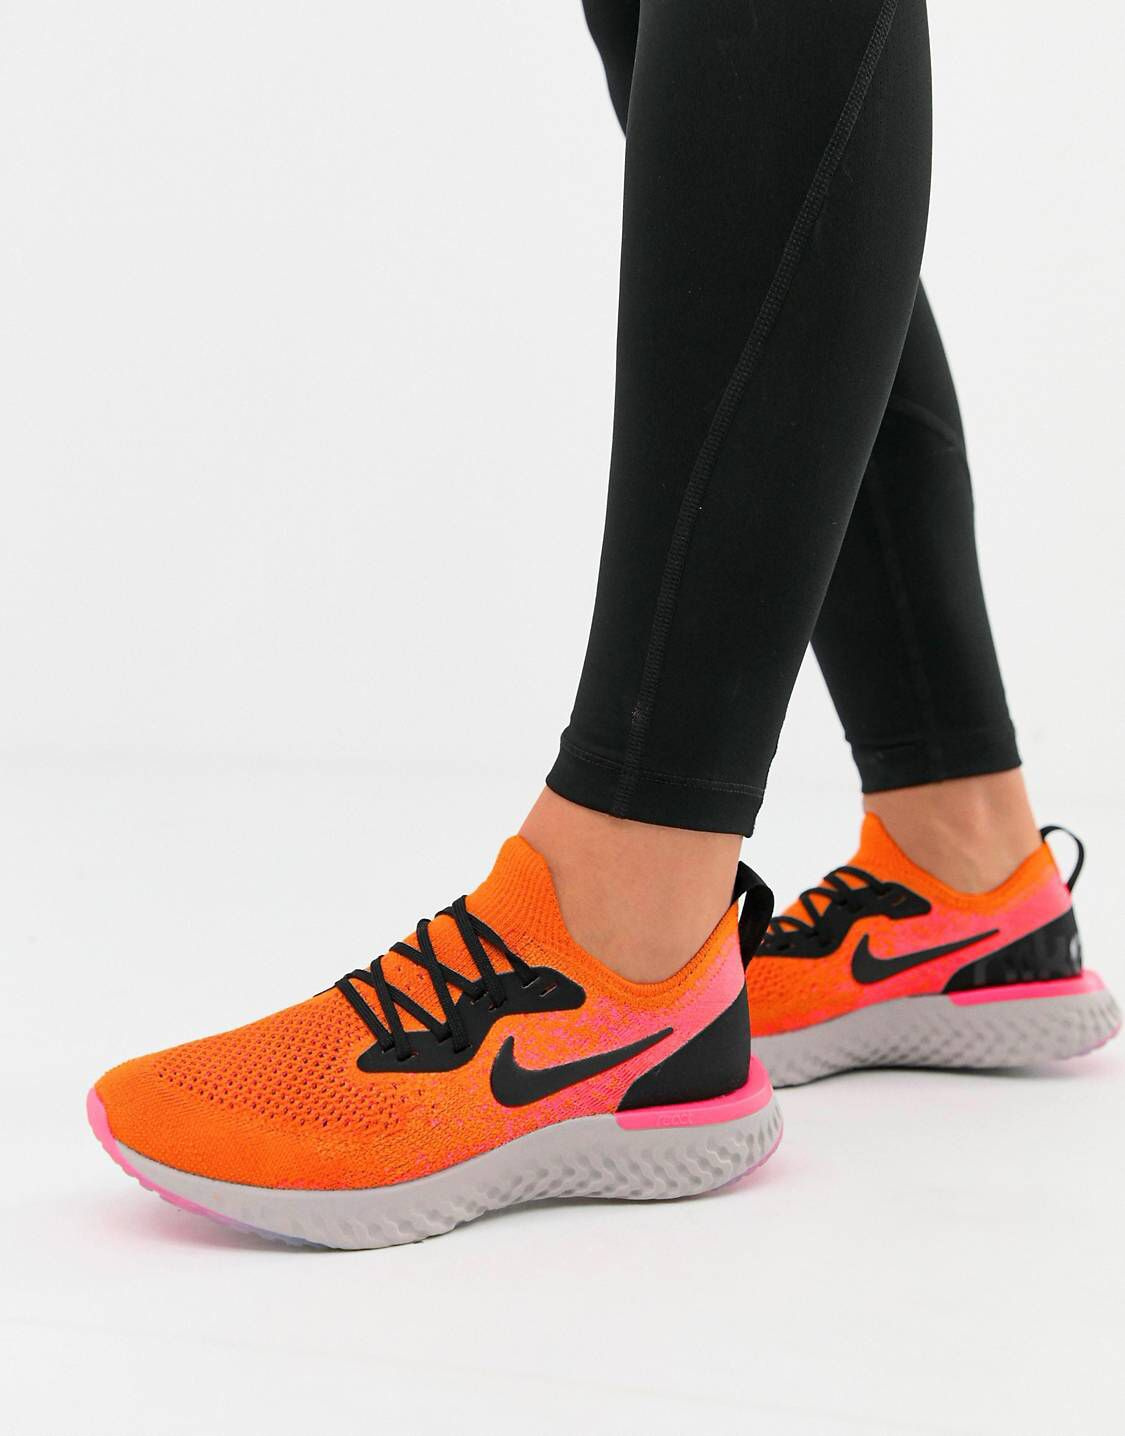 69212a9e92 Nike Running Epic React In Orange | These boots are made for walkin ...